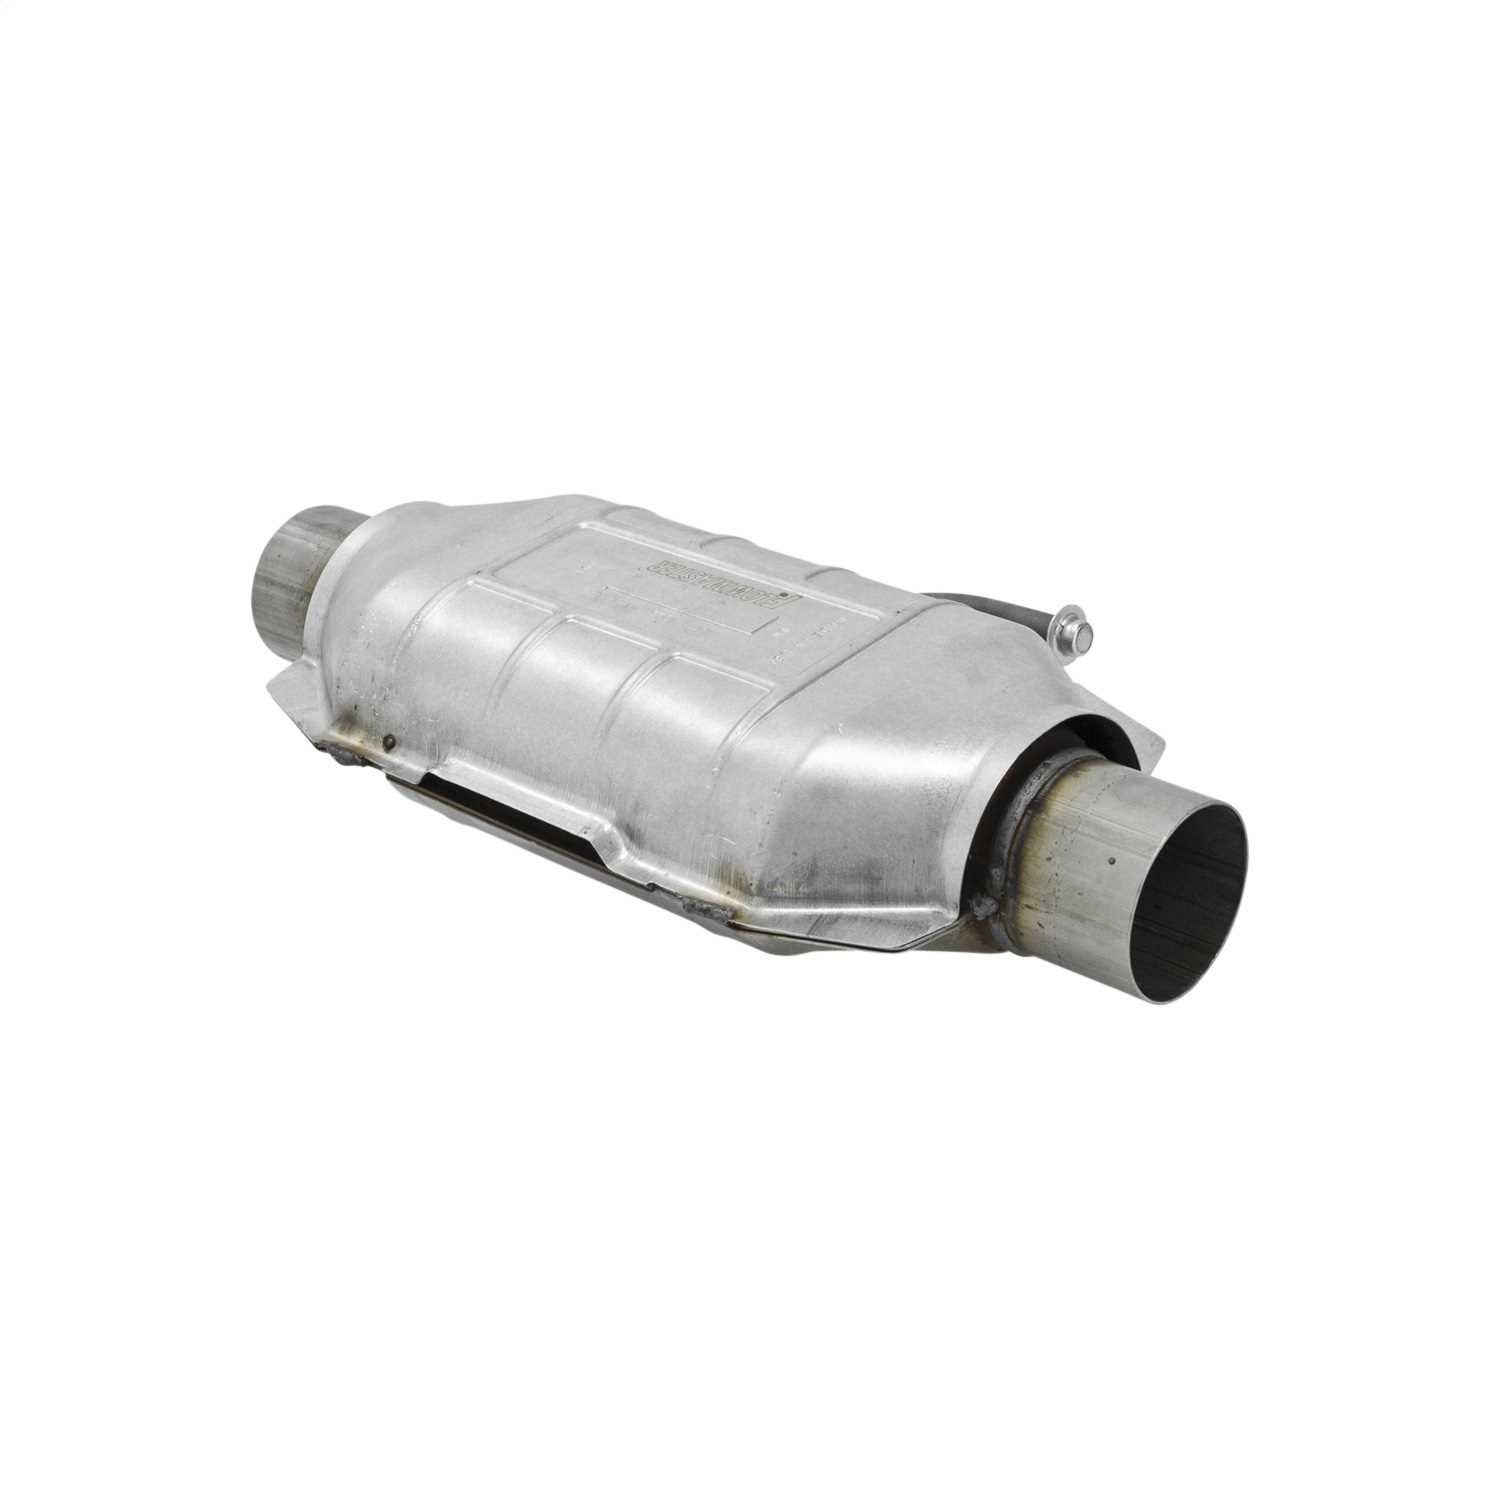 2500230 Flowmaster 49 State Catalytic Converters Universal Catalytic Converter